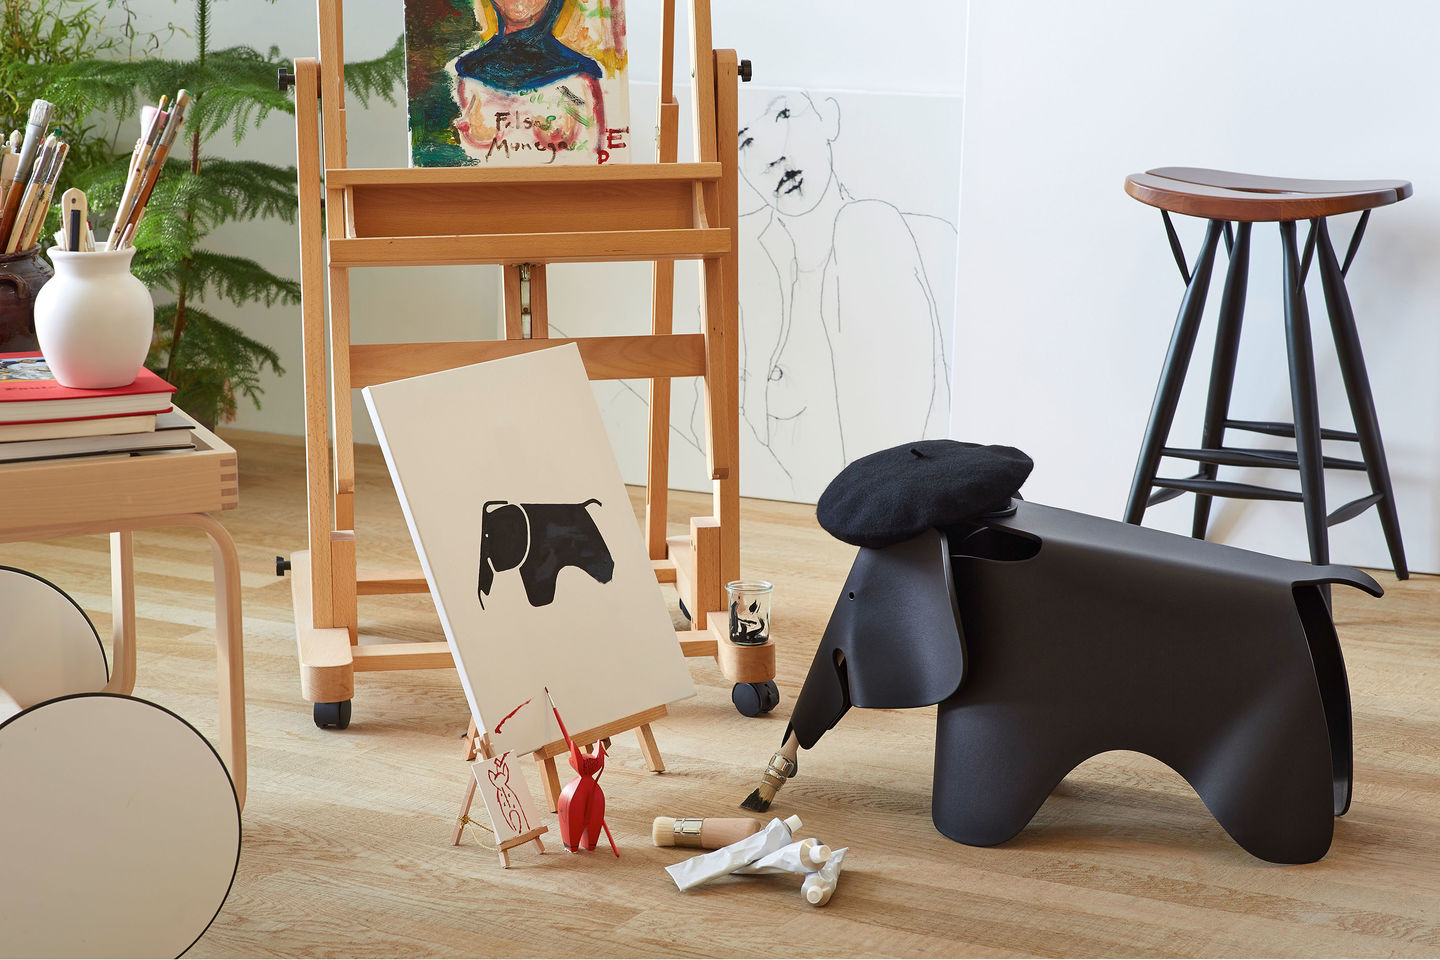 Light grey chair - Whether As A Sturdy Indoor Outdoor Toy Or Simply As An Attractive